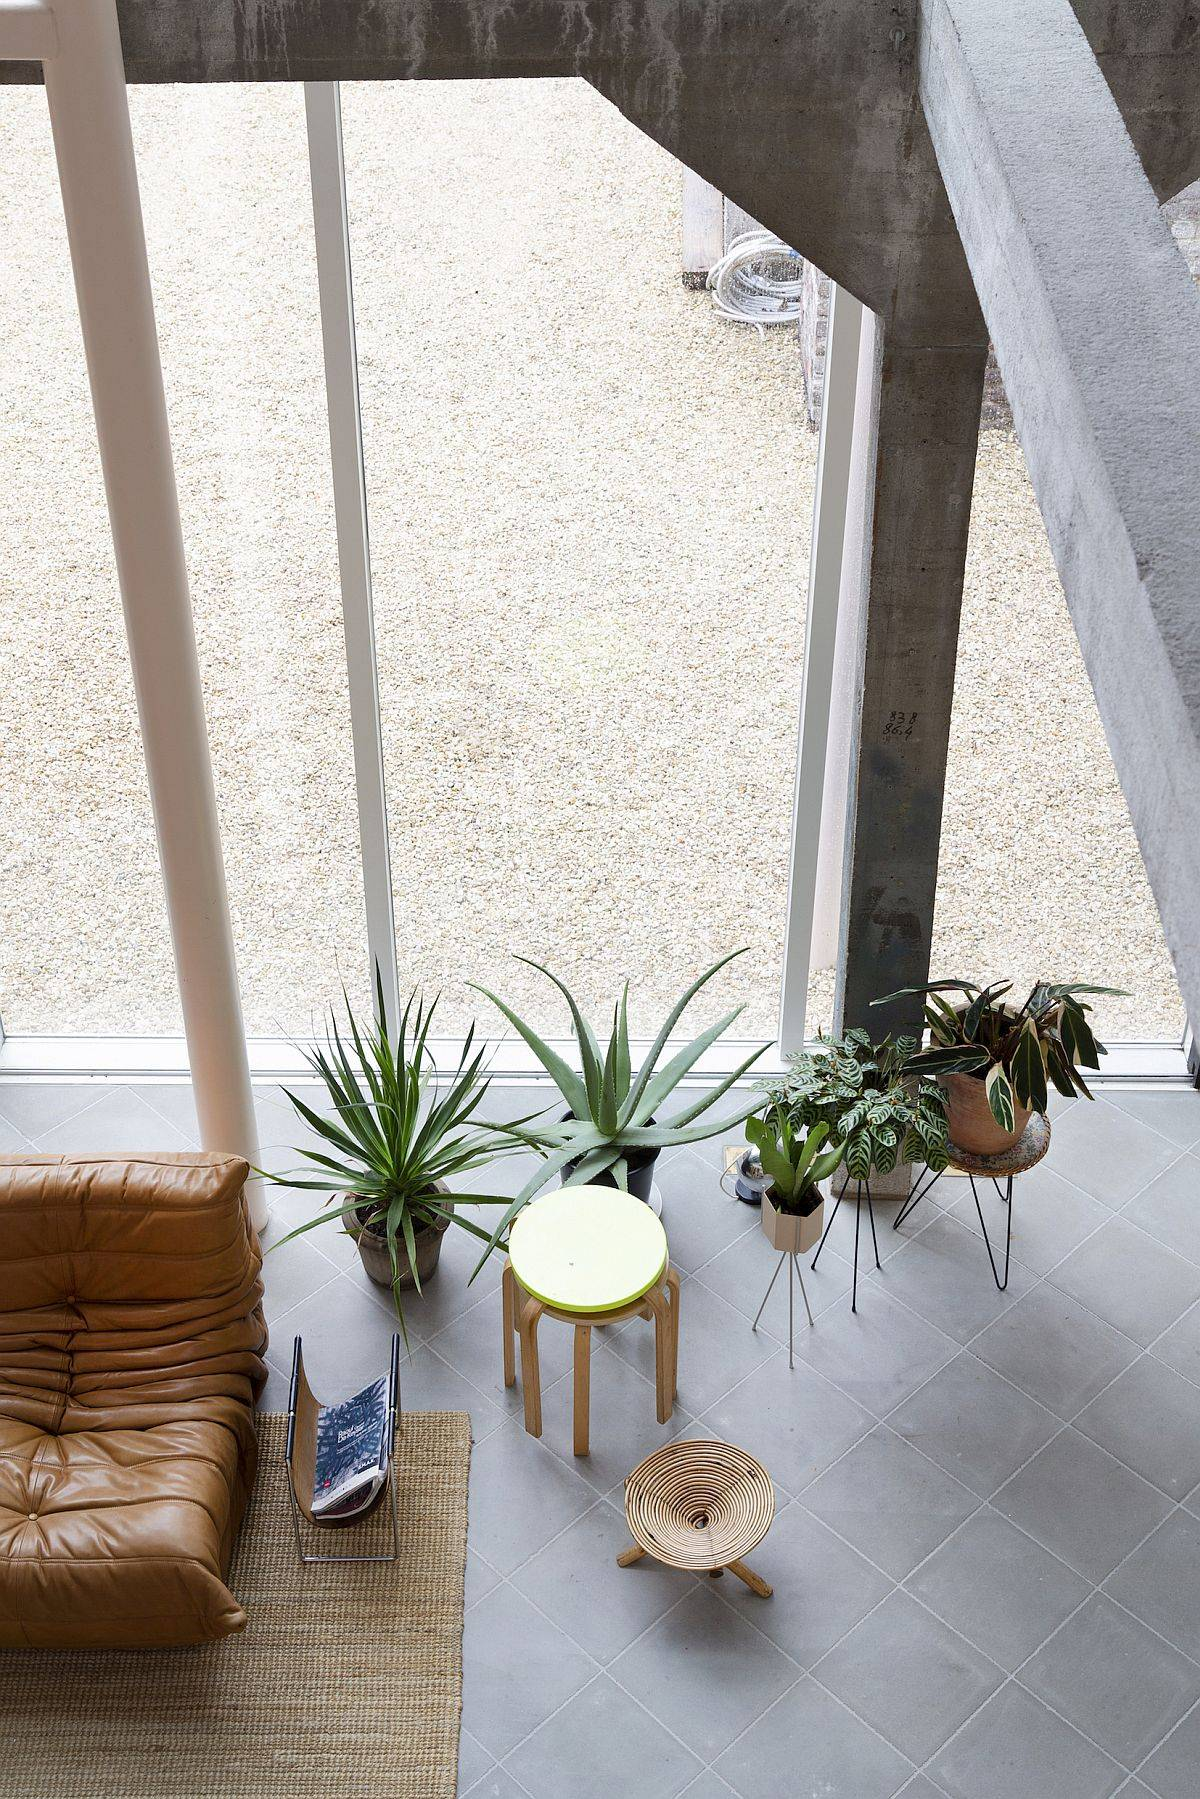 Innovative-decor-and-custom-additions-to-the-living-room-of-the-ShedBOX-House-34758